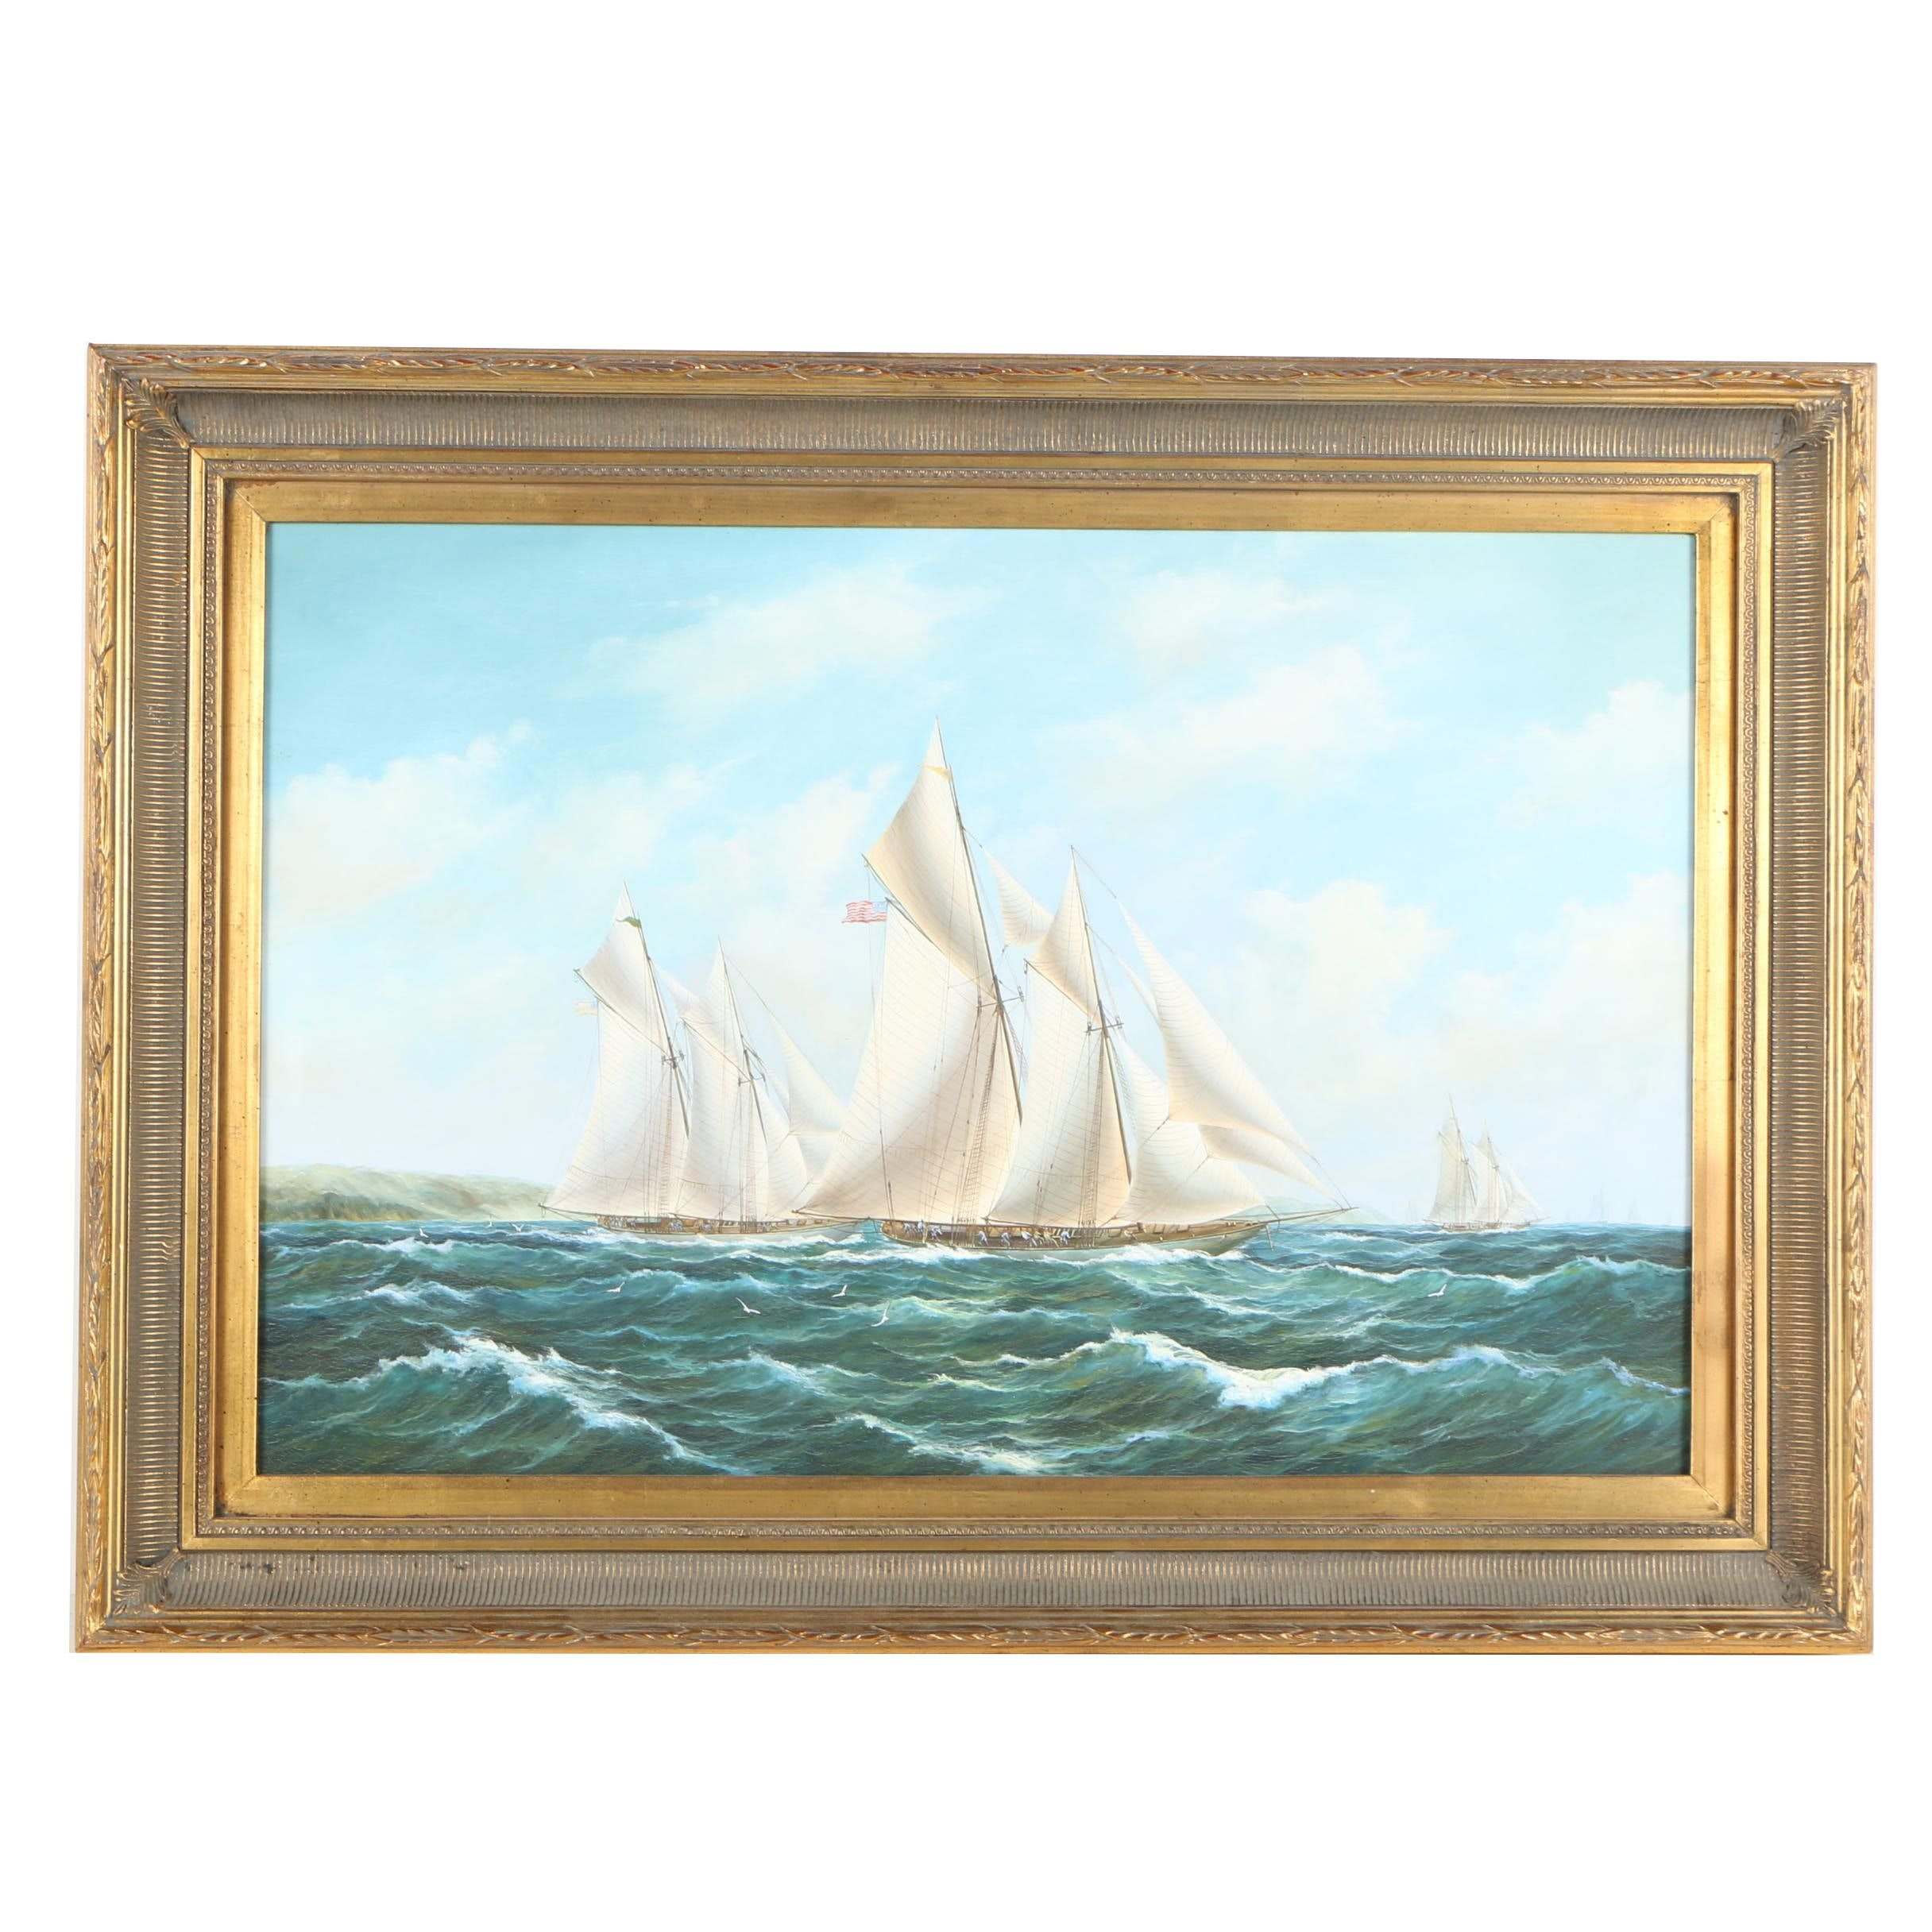 Oil Painting of Sailing Ships